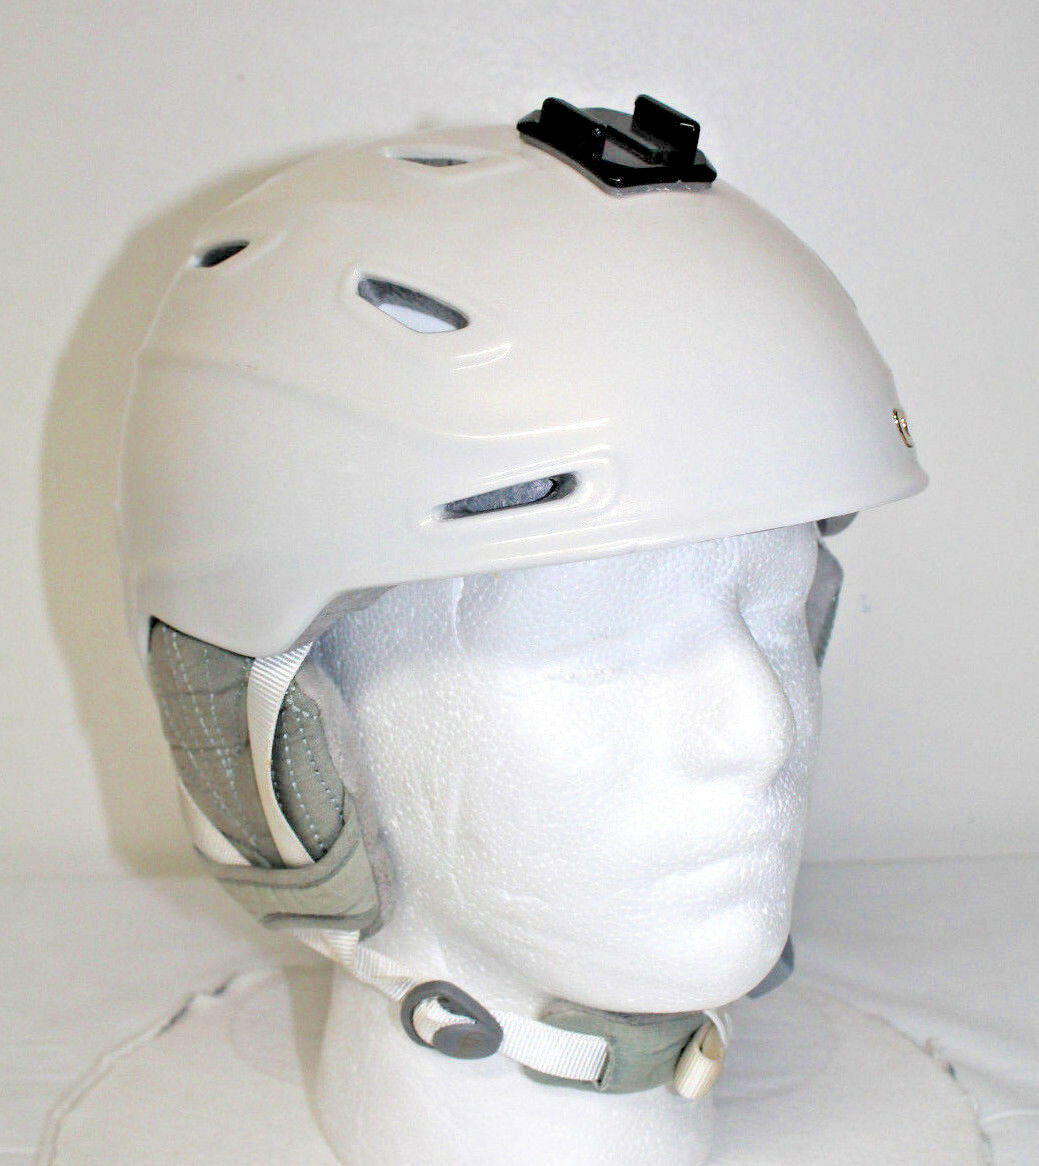 Smith Arrival Ski Snowboard Helmet - Women's Small - White Pearl  color  order now with big discount & free delivery